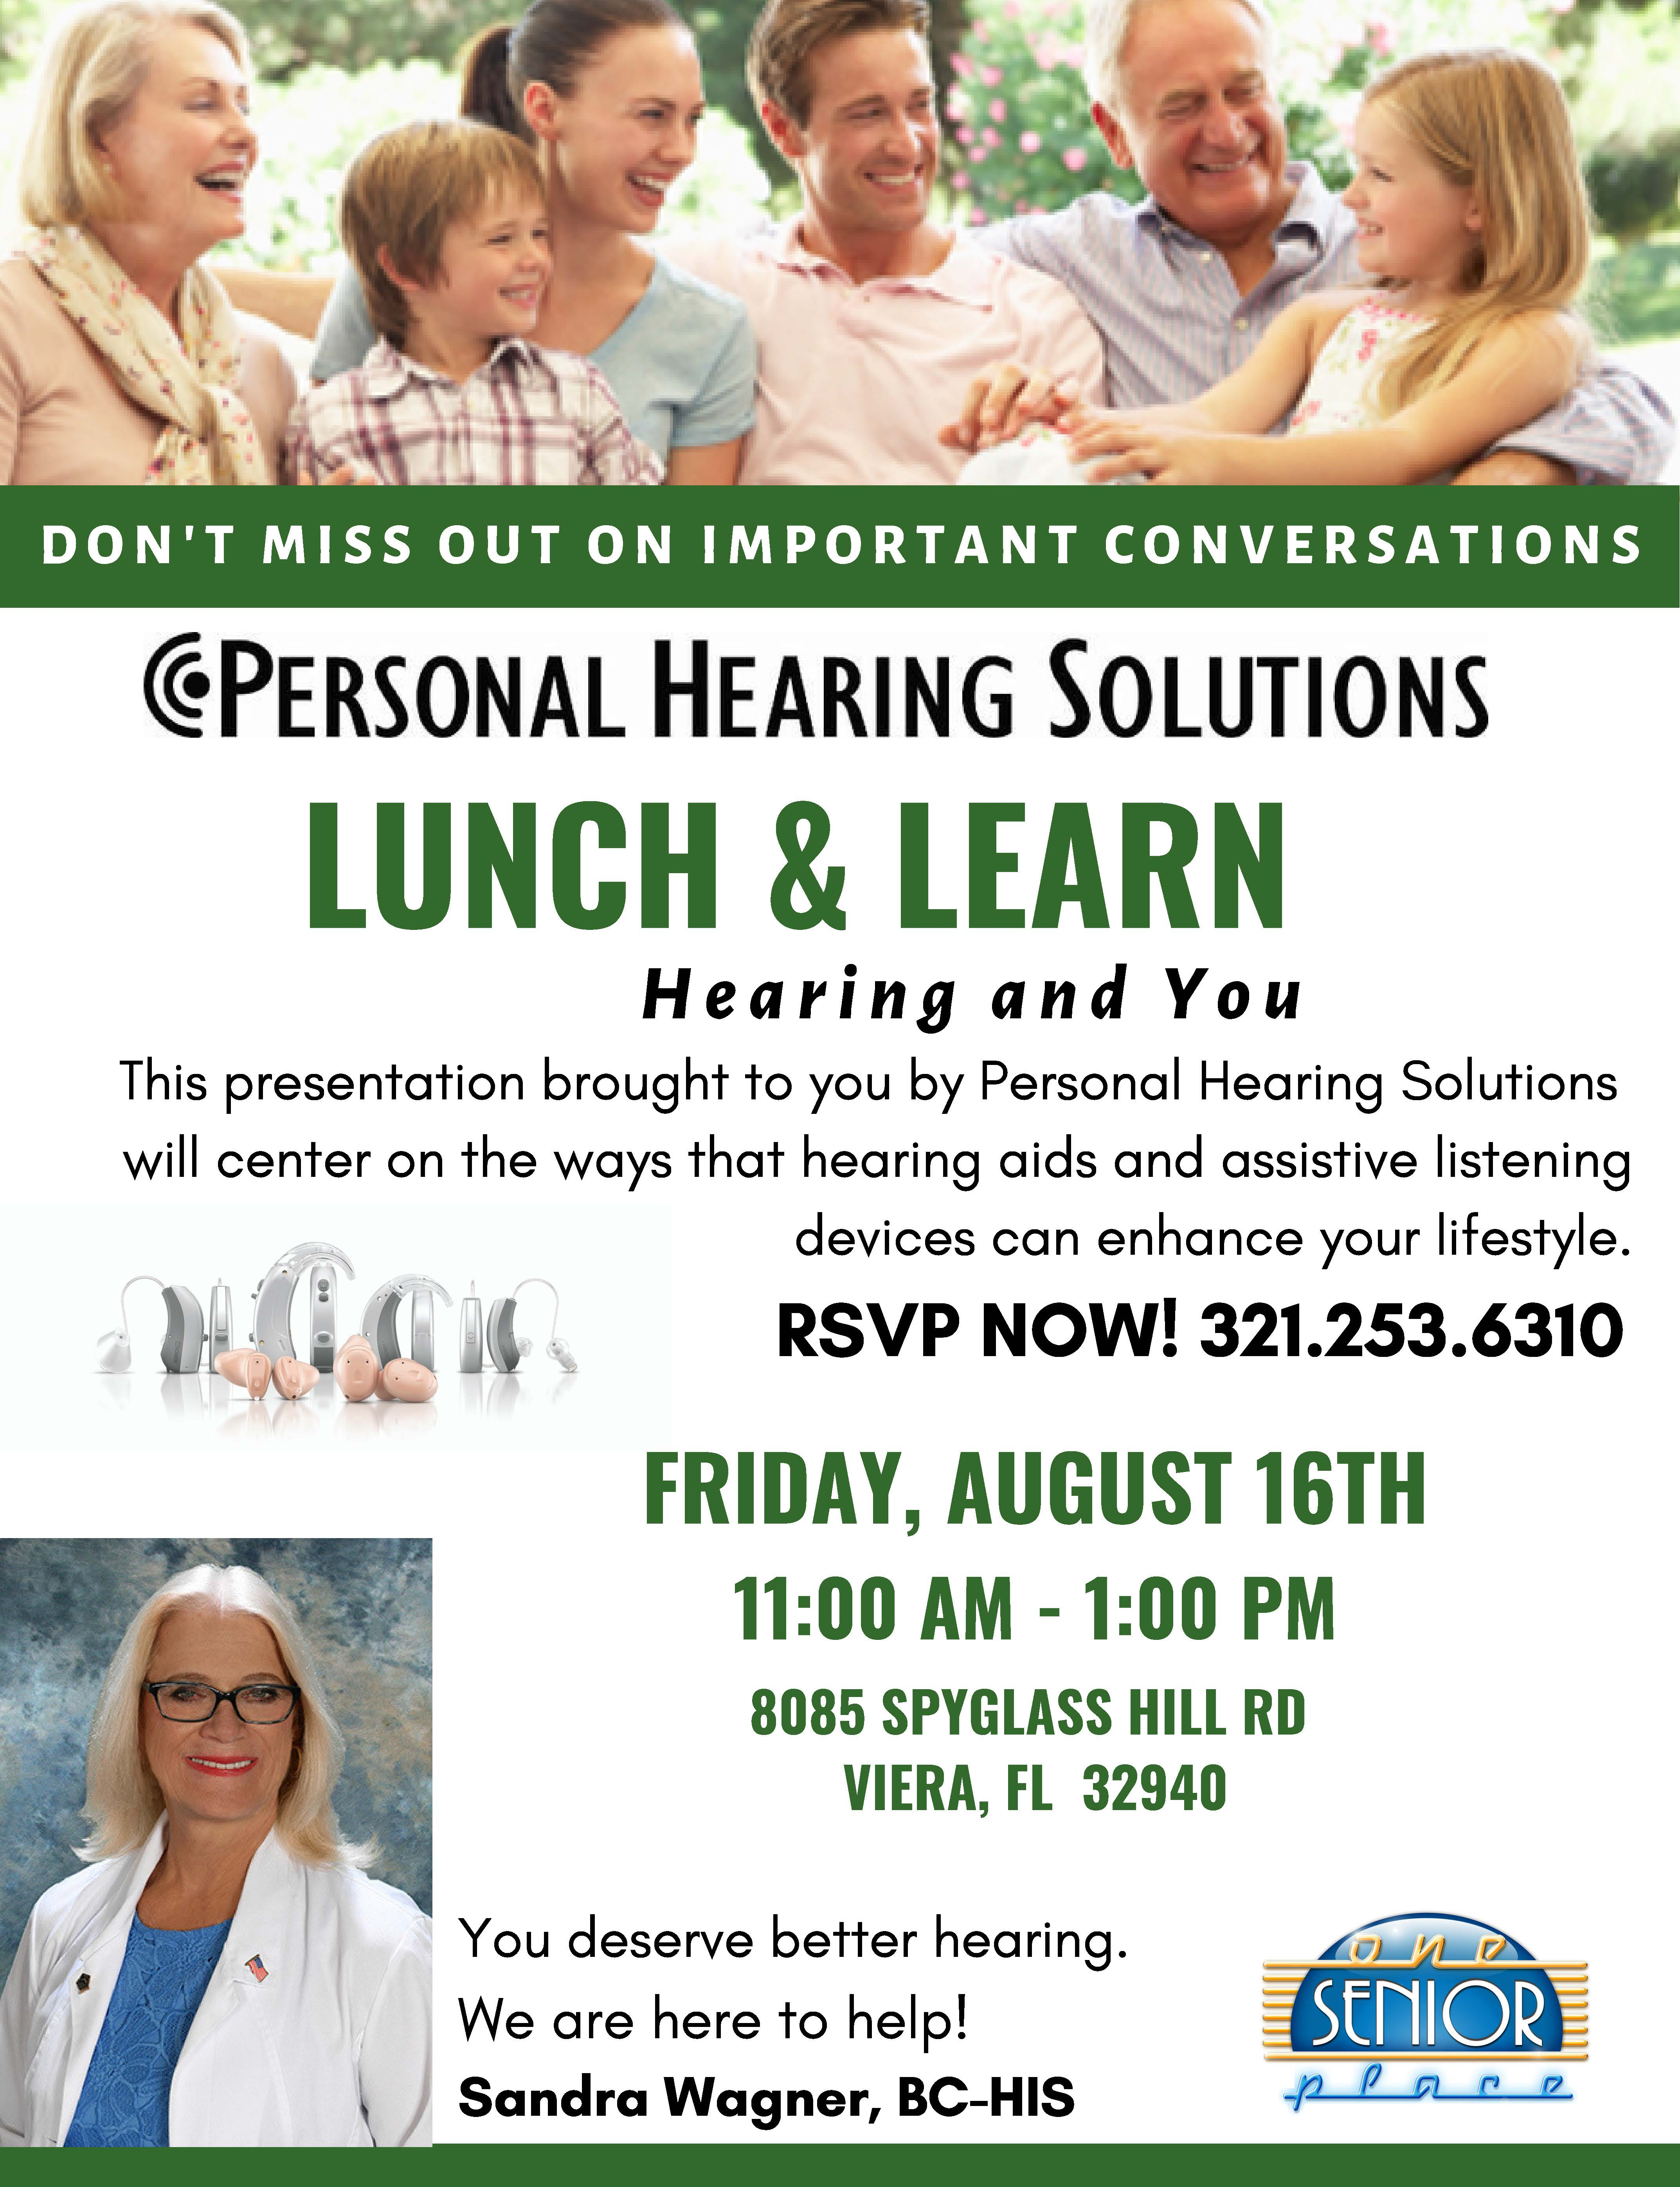 Hearing and You Lunch and Learn presented by Personal Hearing Solutions